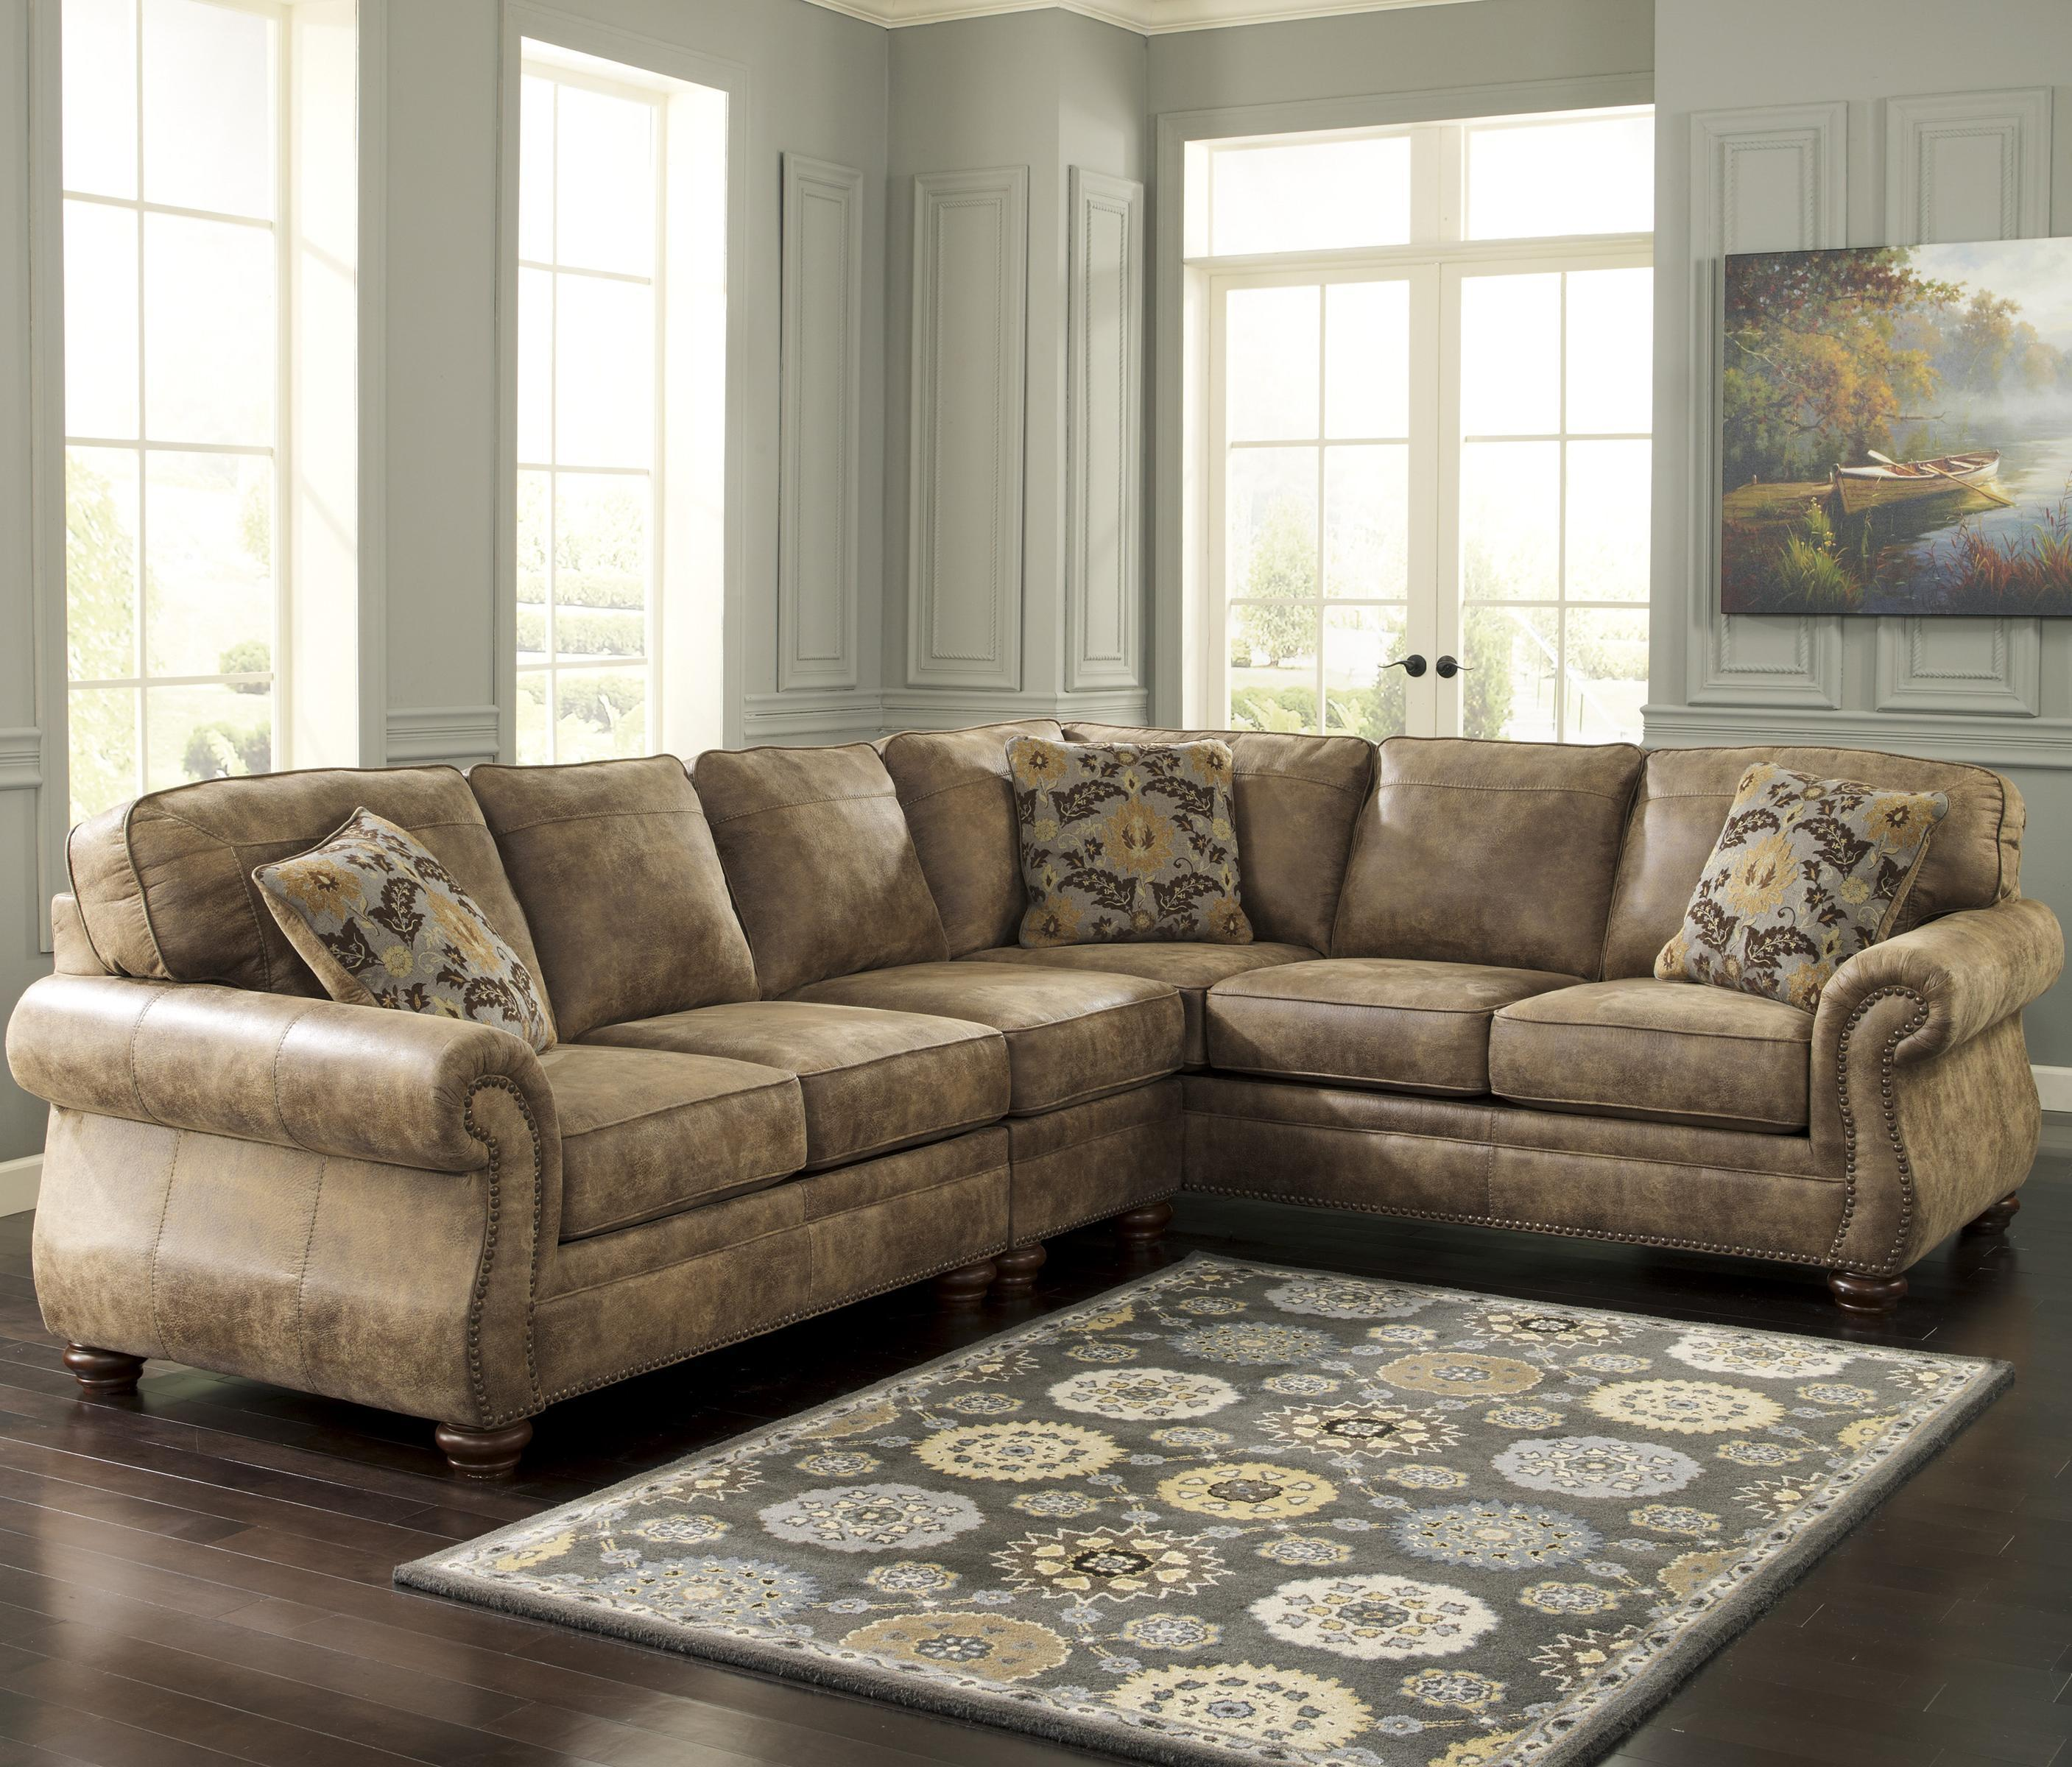 Signature Design by Ashley Larkinhurst - Earth Sectional with RAF Sofa - Item Number: 3190155+46+67